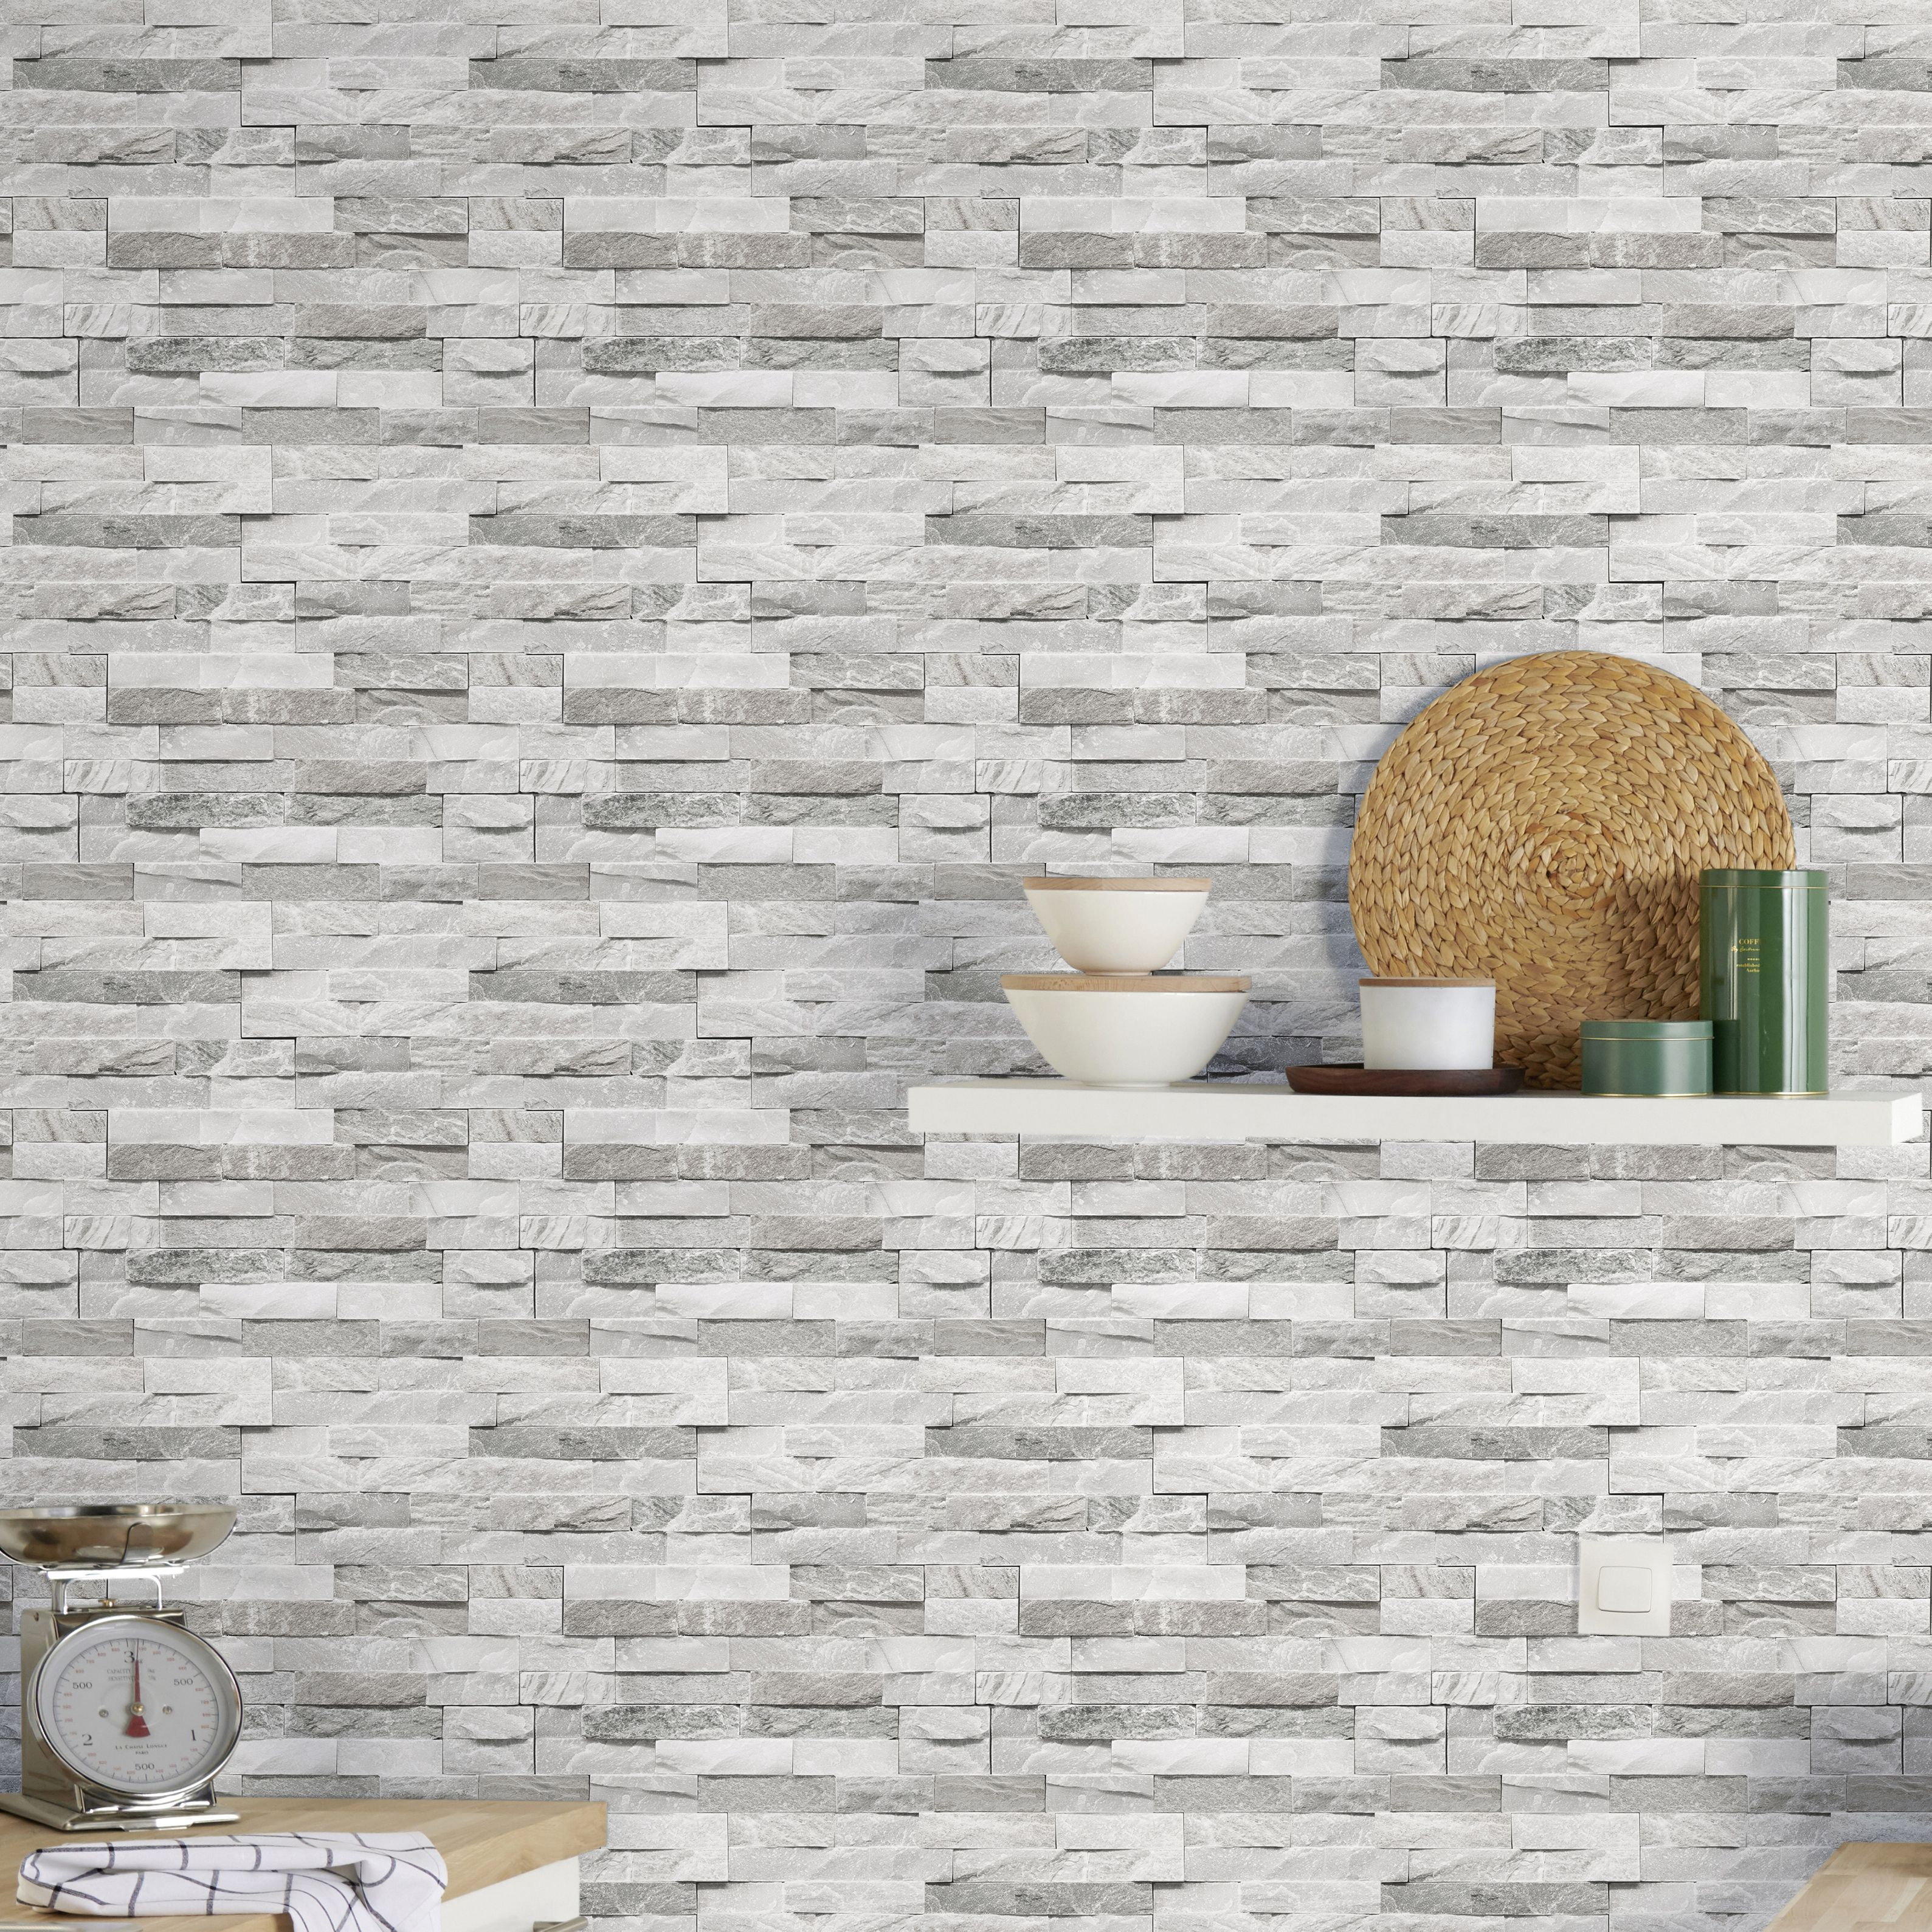 Goodhome Jori Grey White Brick Wallpaper Brick Wallpaper Living Room Grey And White Wallpaper Brick Texture